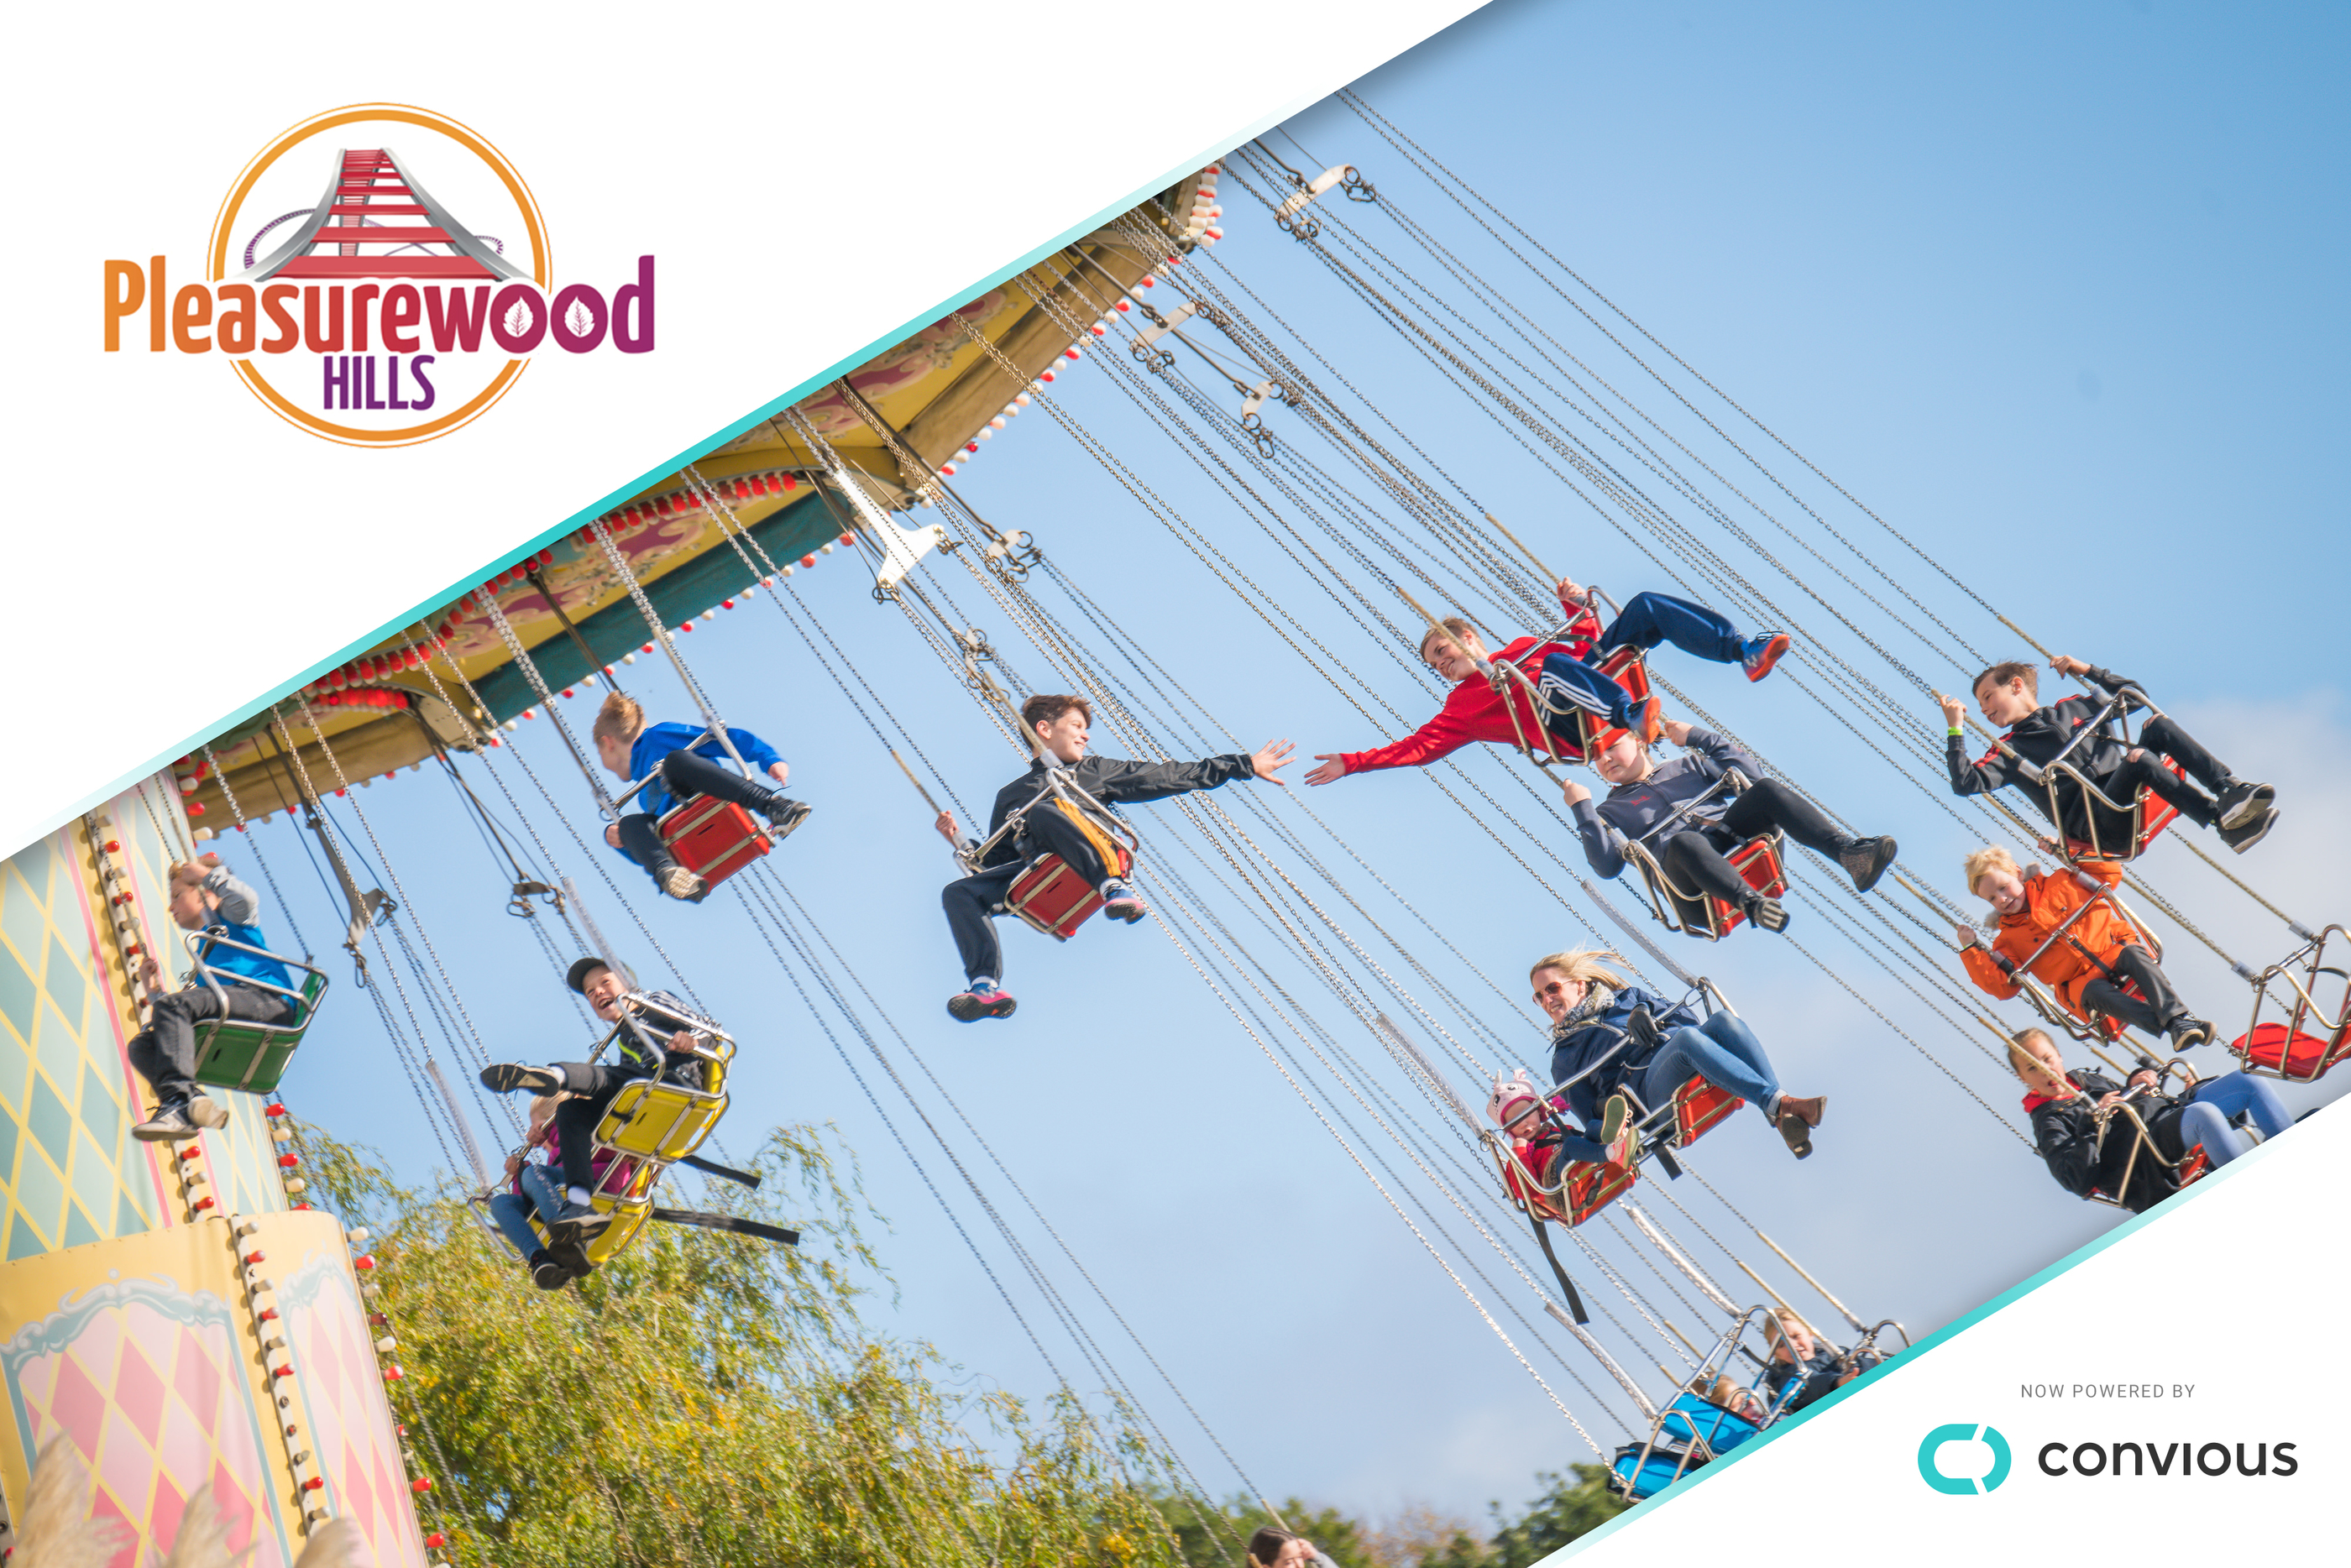 convious partners up with Pleasurewood Holls